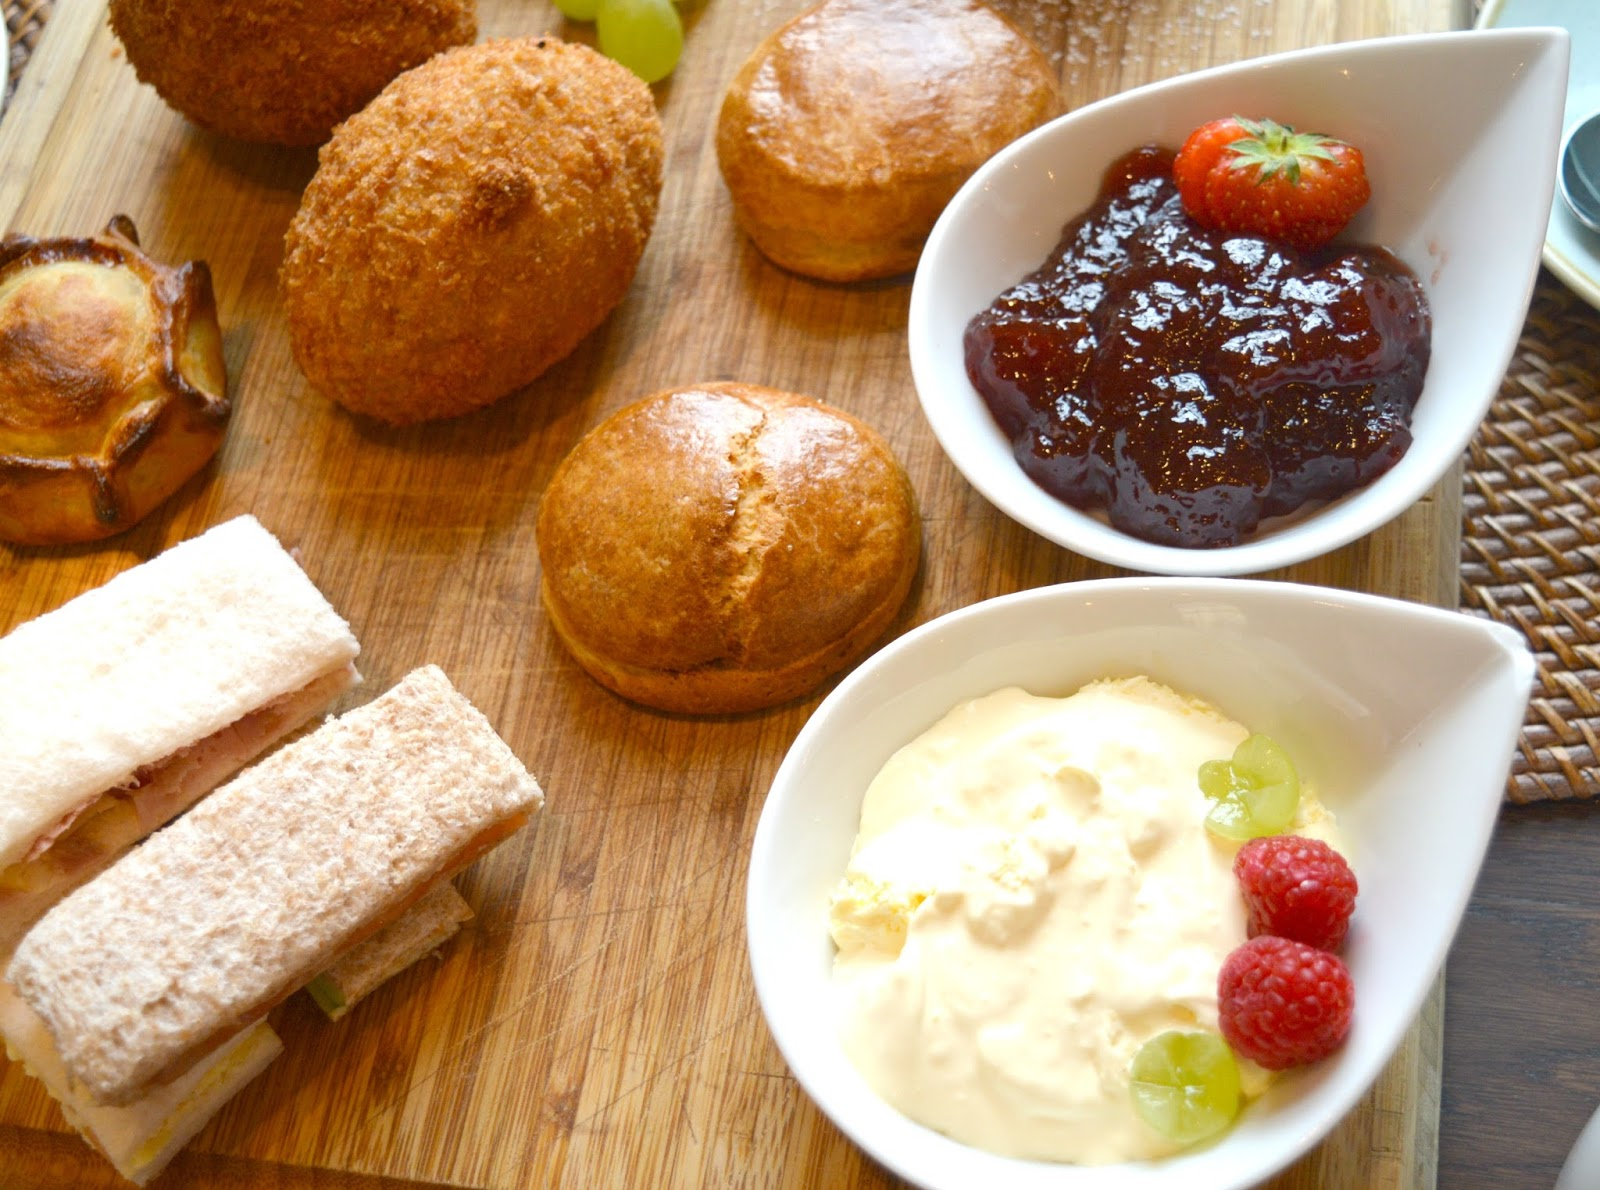 Afternoon Tea at The Painswick